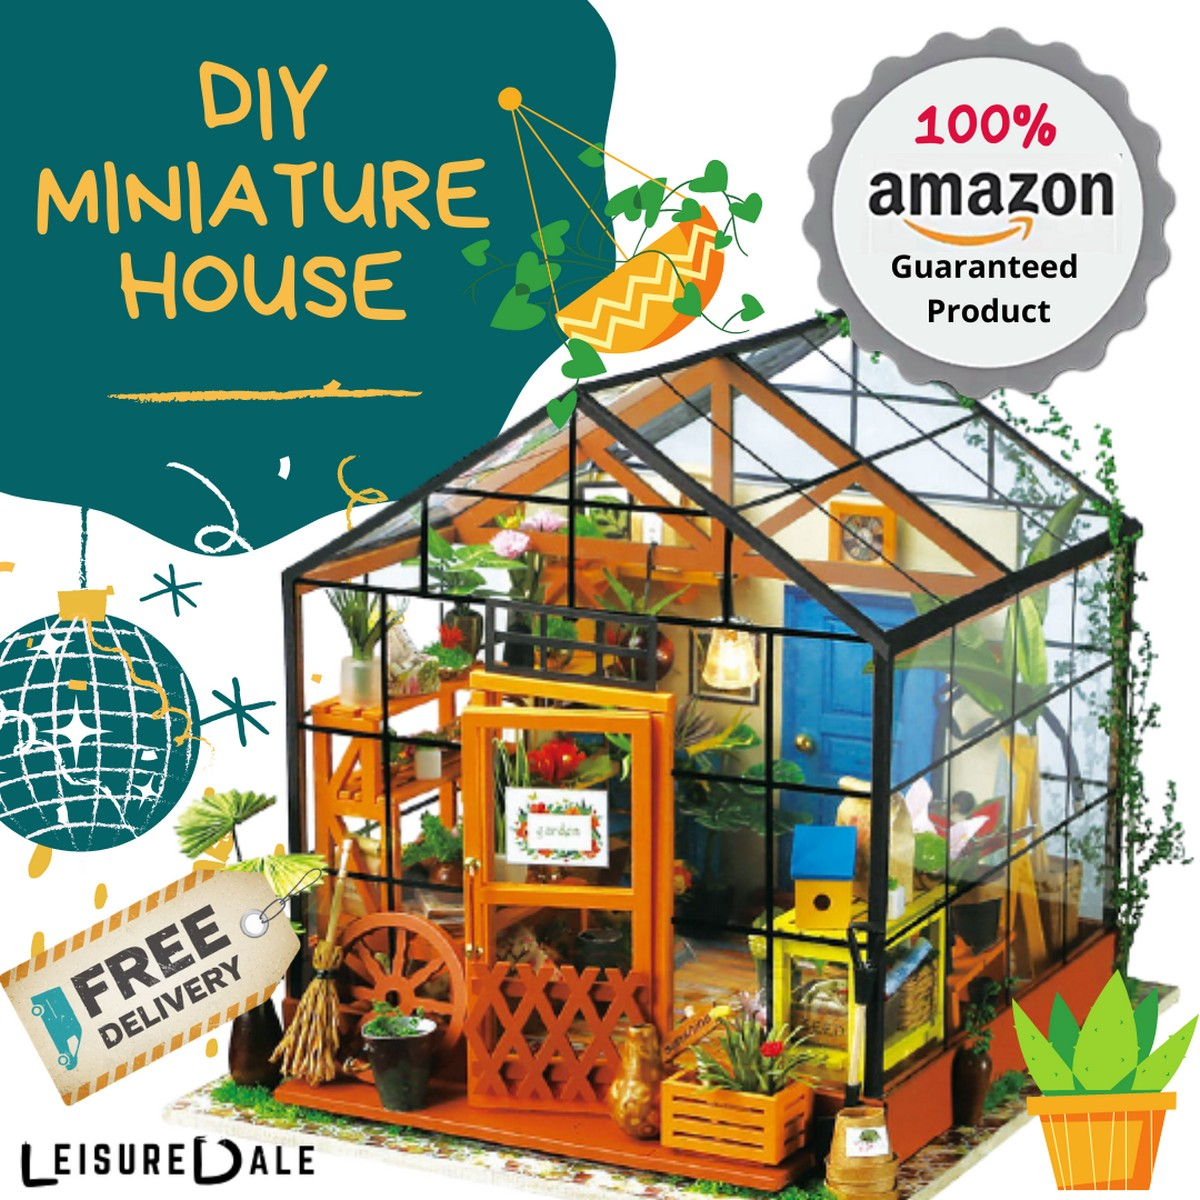 DIY Miniature Doll House Kit Robotimes Mini Size 3D Wooden Puzzle & Hobby Craft with LED Light For Girls & Boys Modern Dollhouse